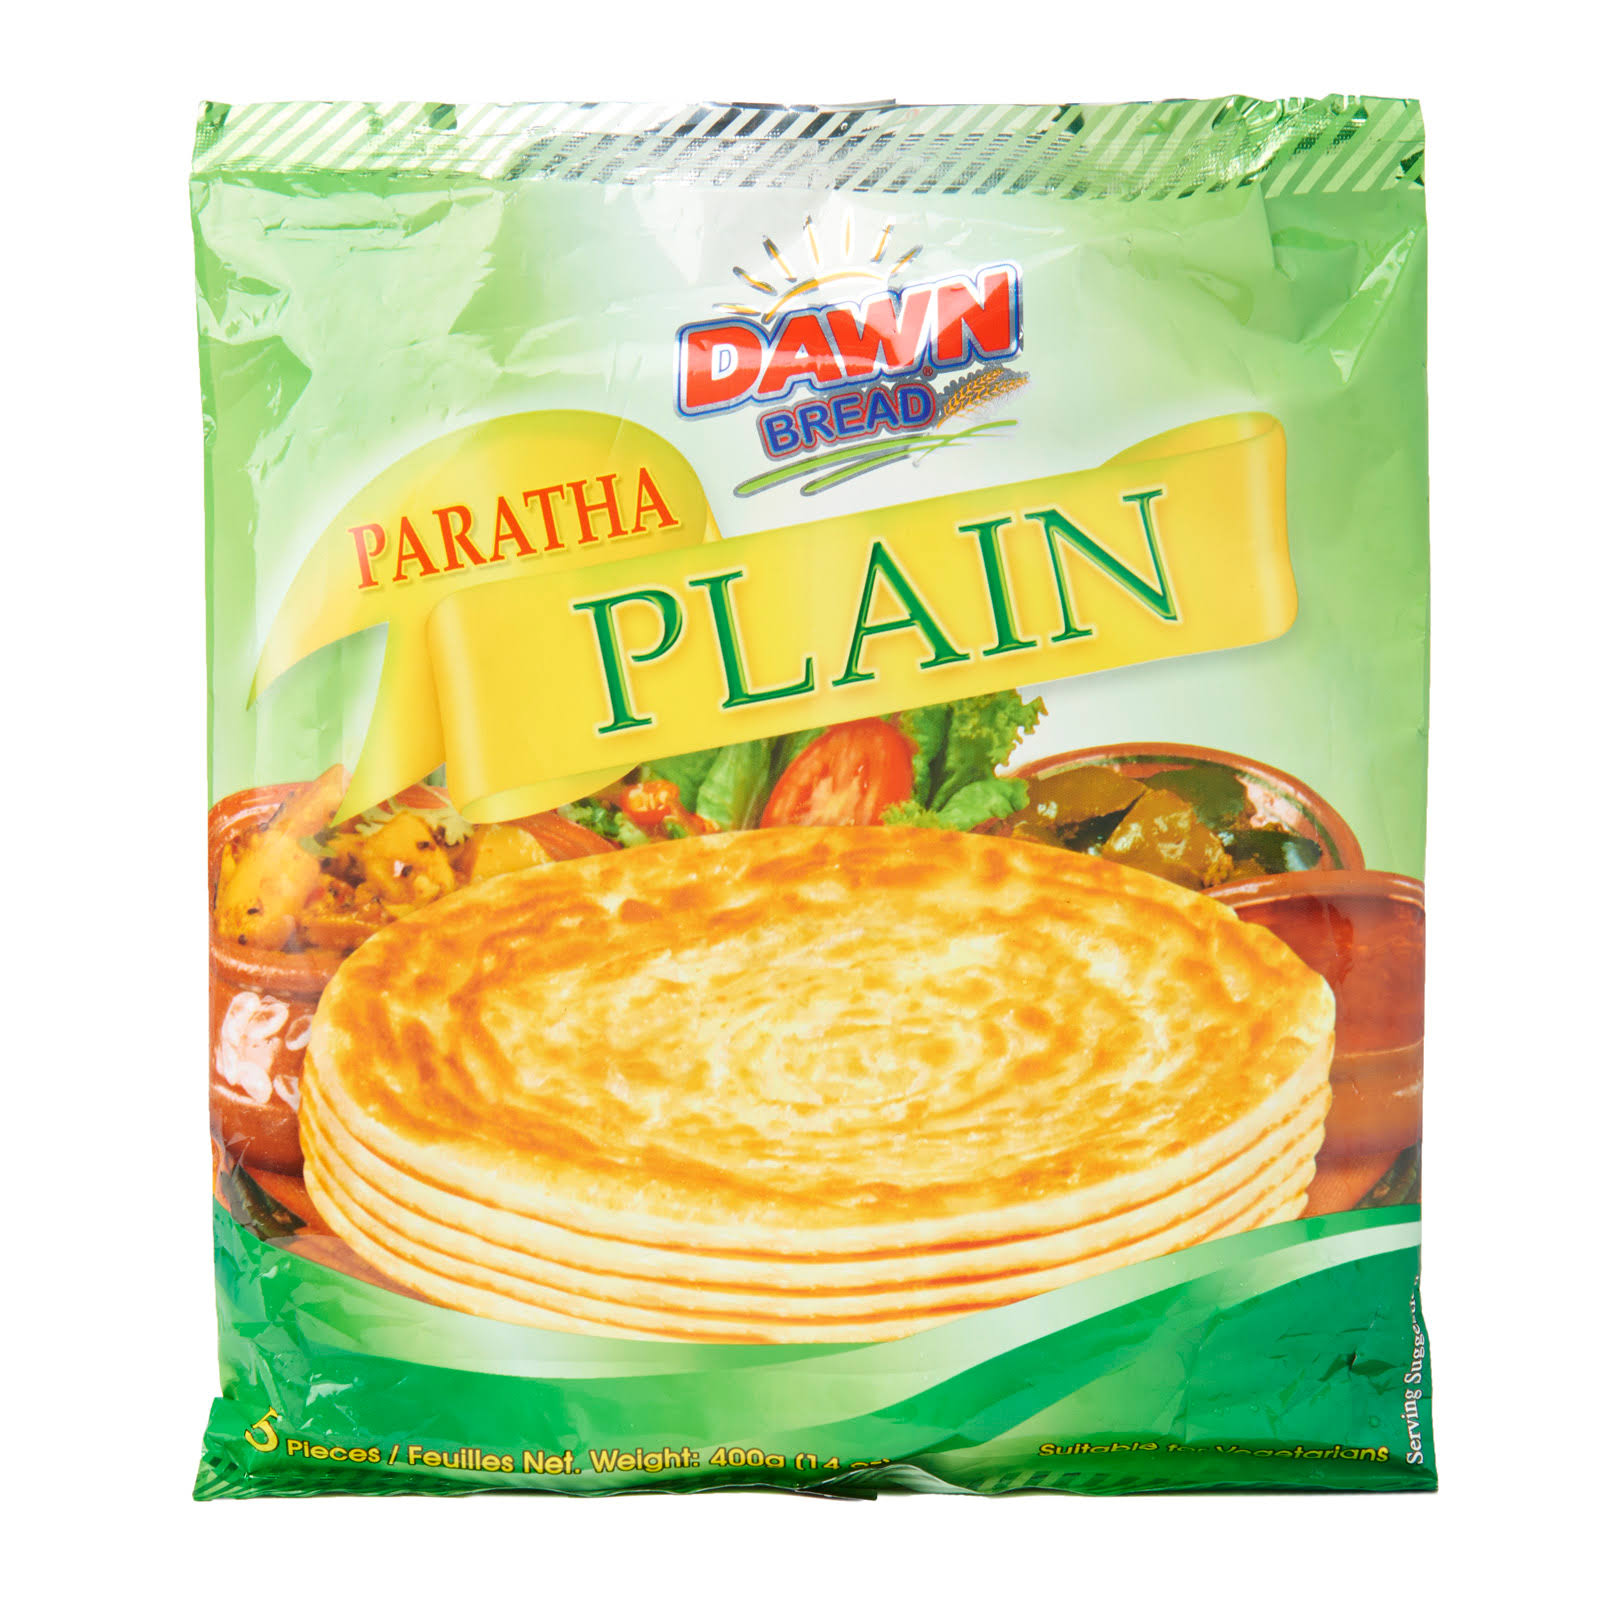 Dawn Bread Plain Paratha - 5 pcs, 400g